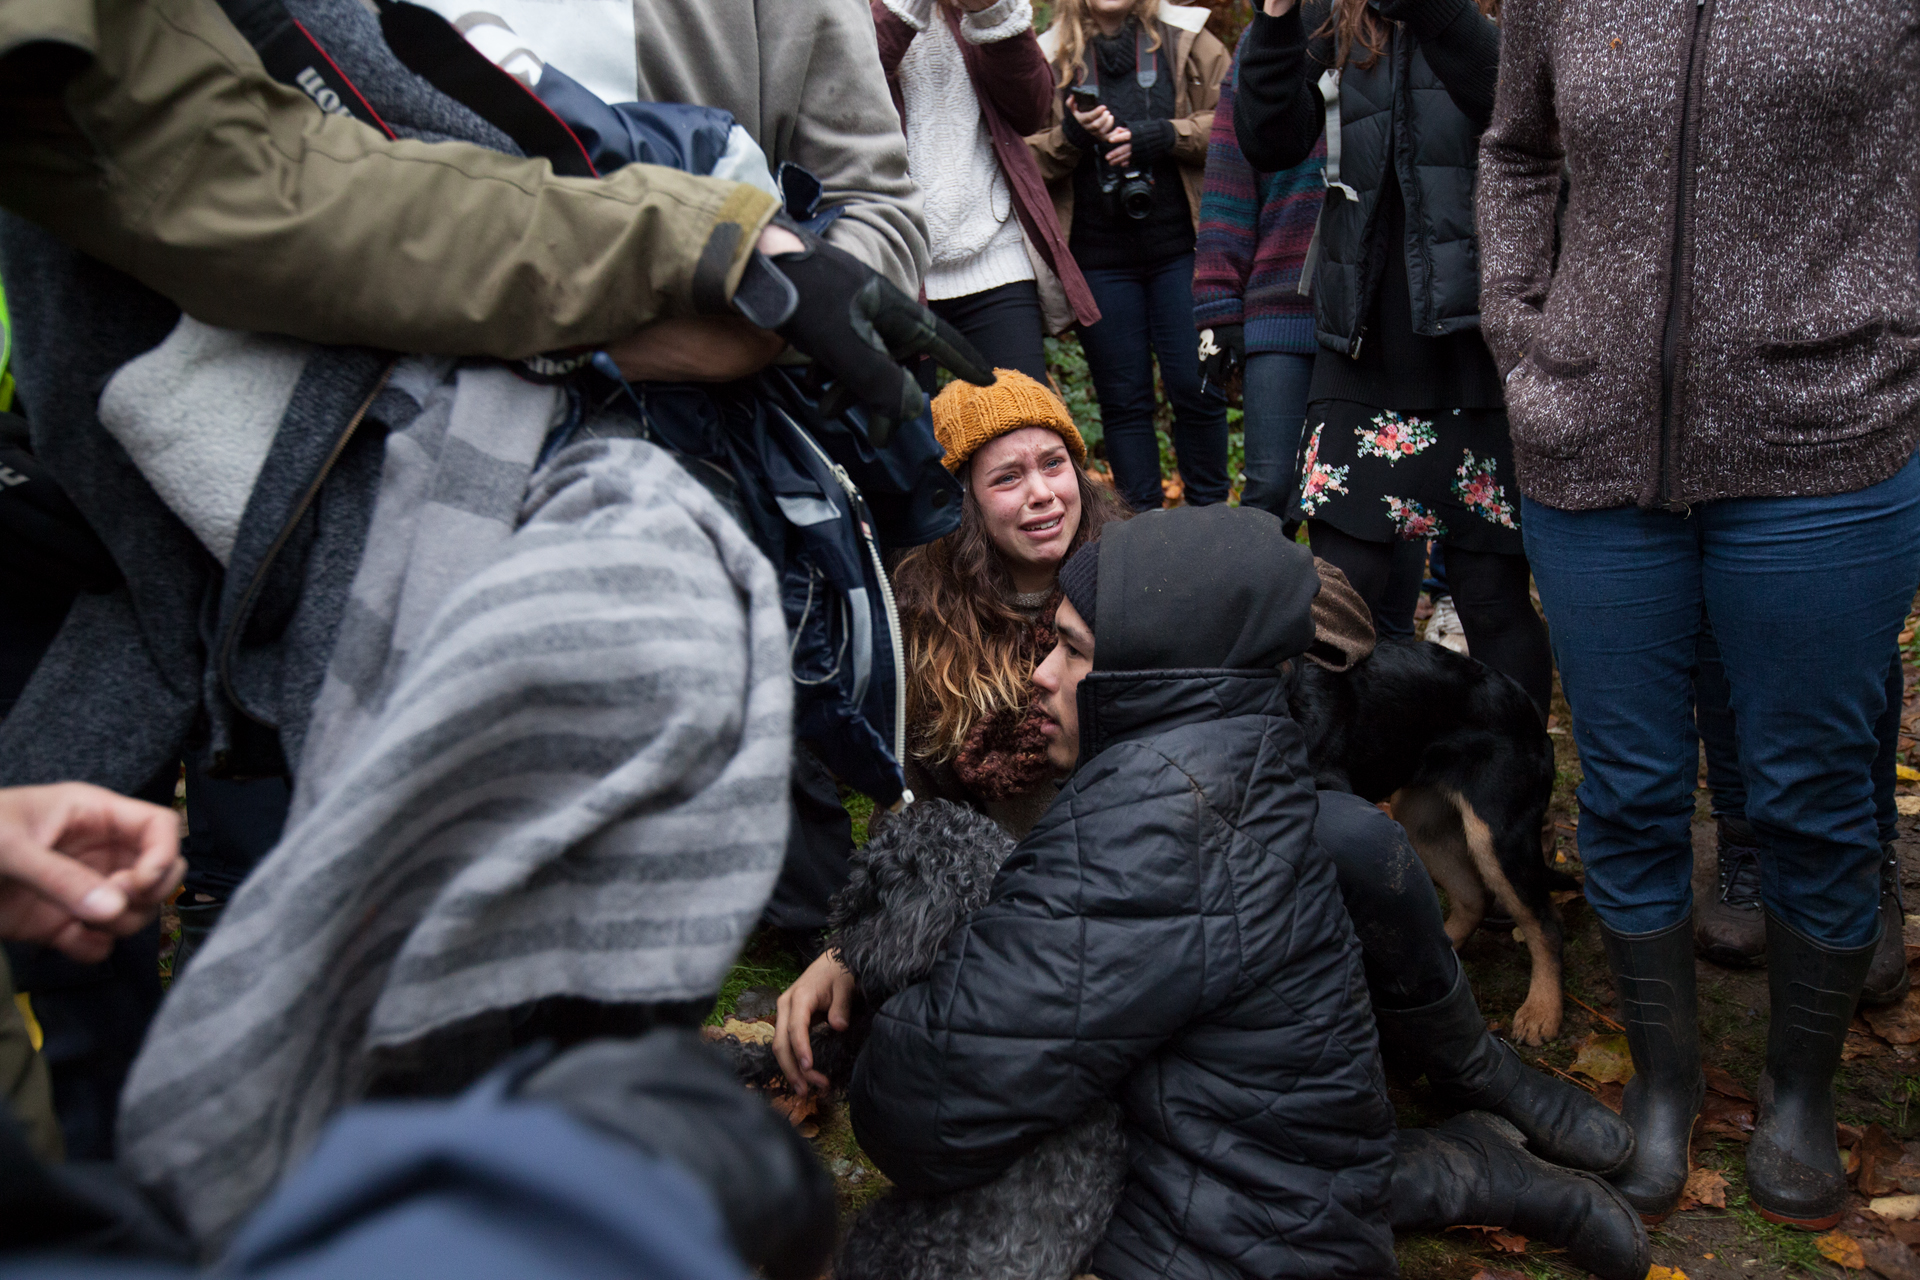 Protestors fall to the ground after getting caught up in a frenzy of police and other protestors.